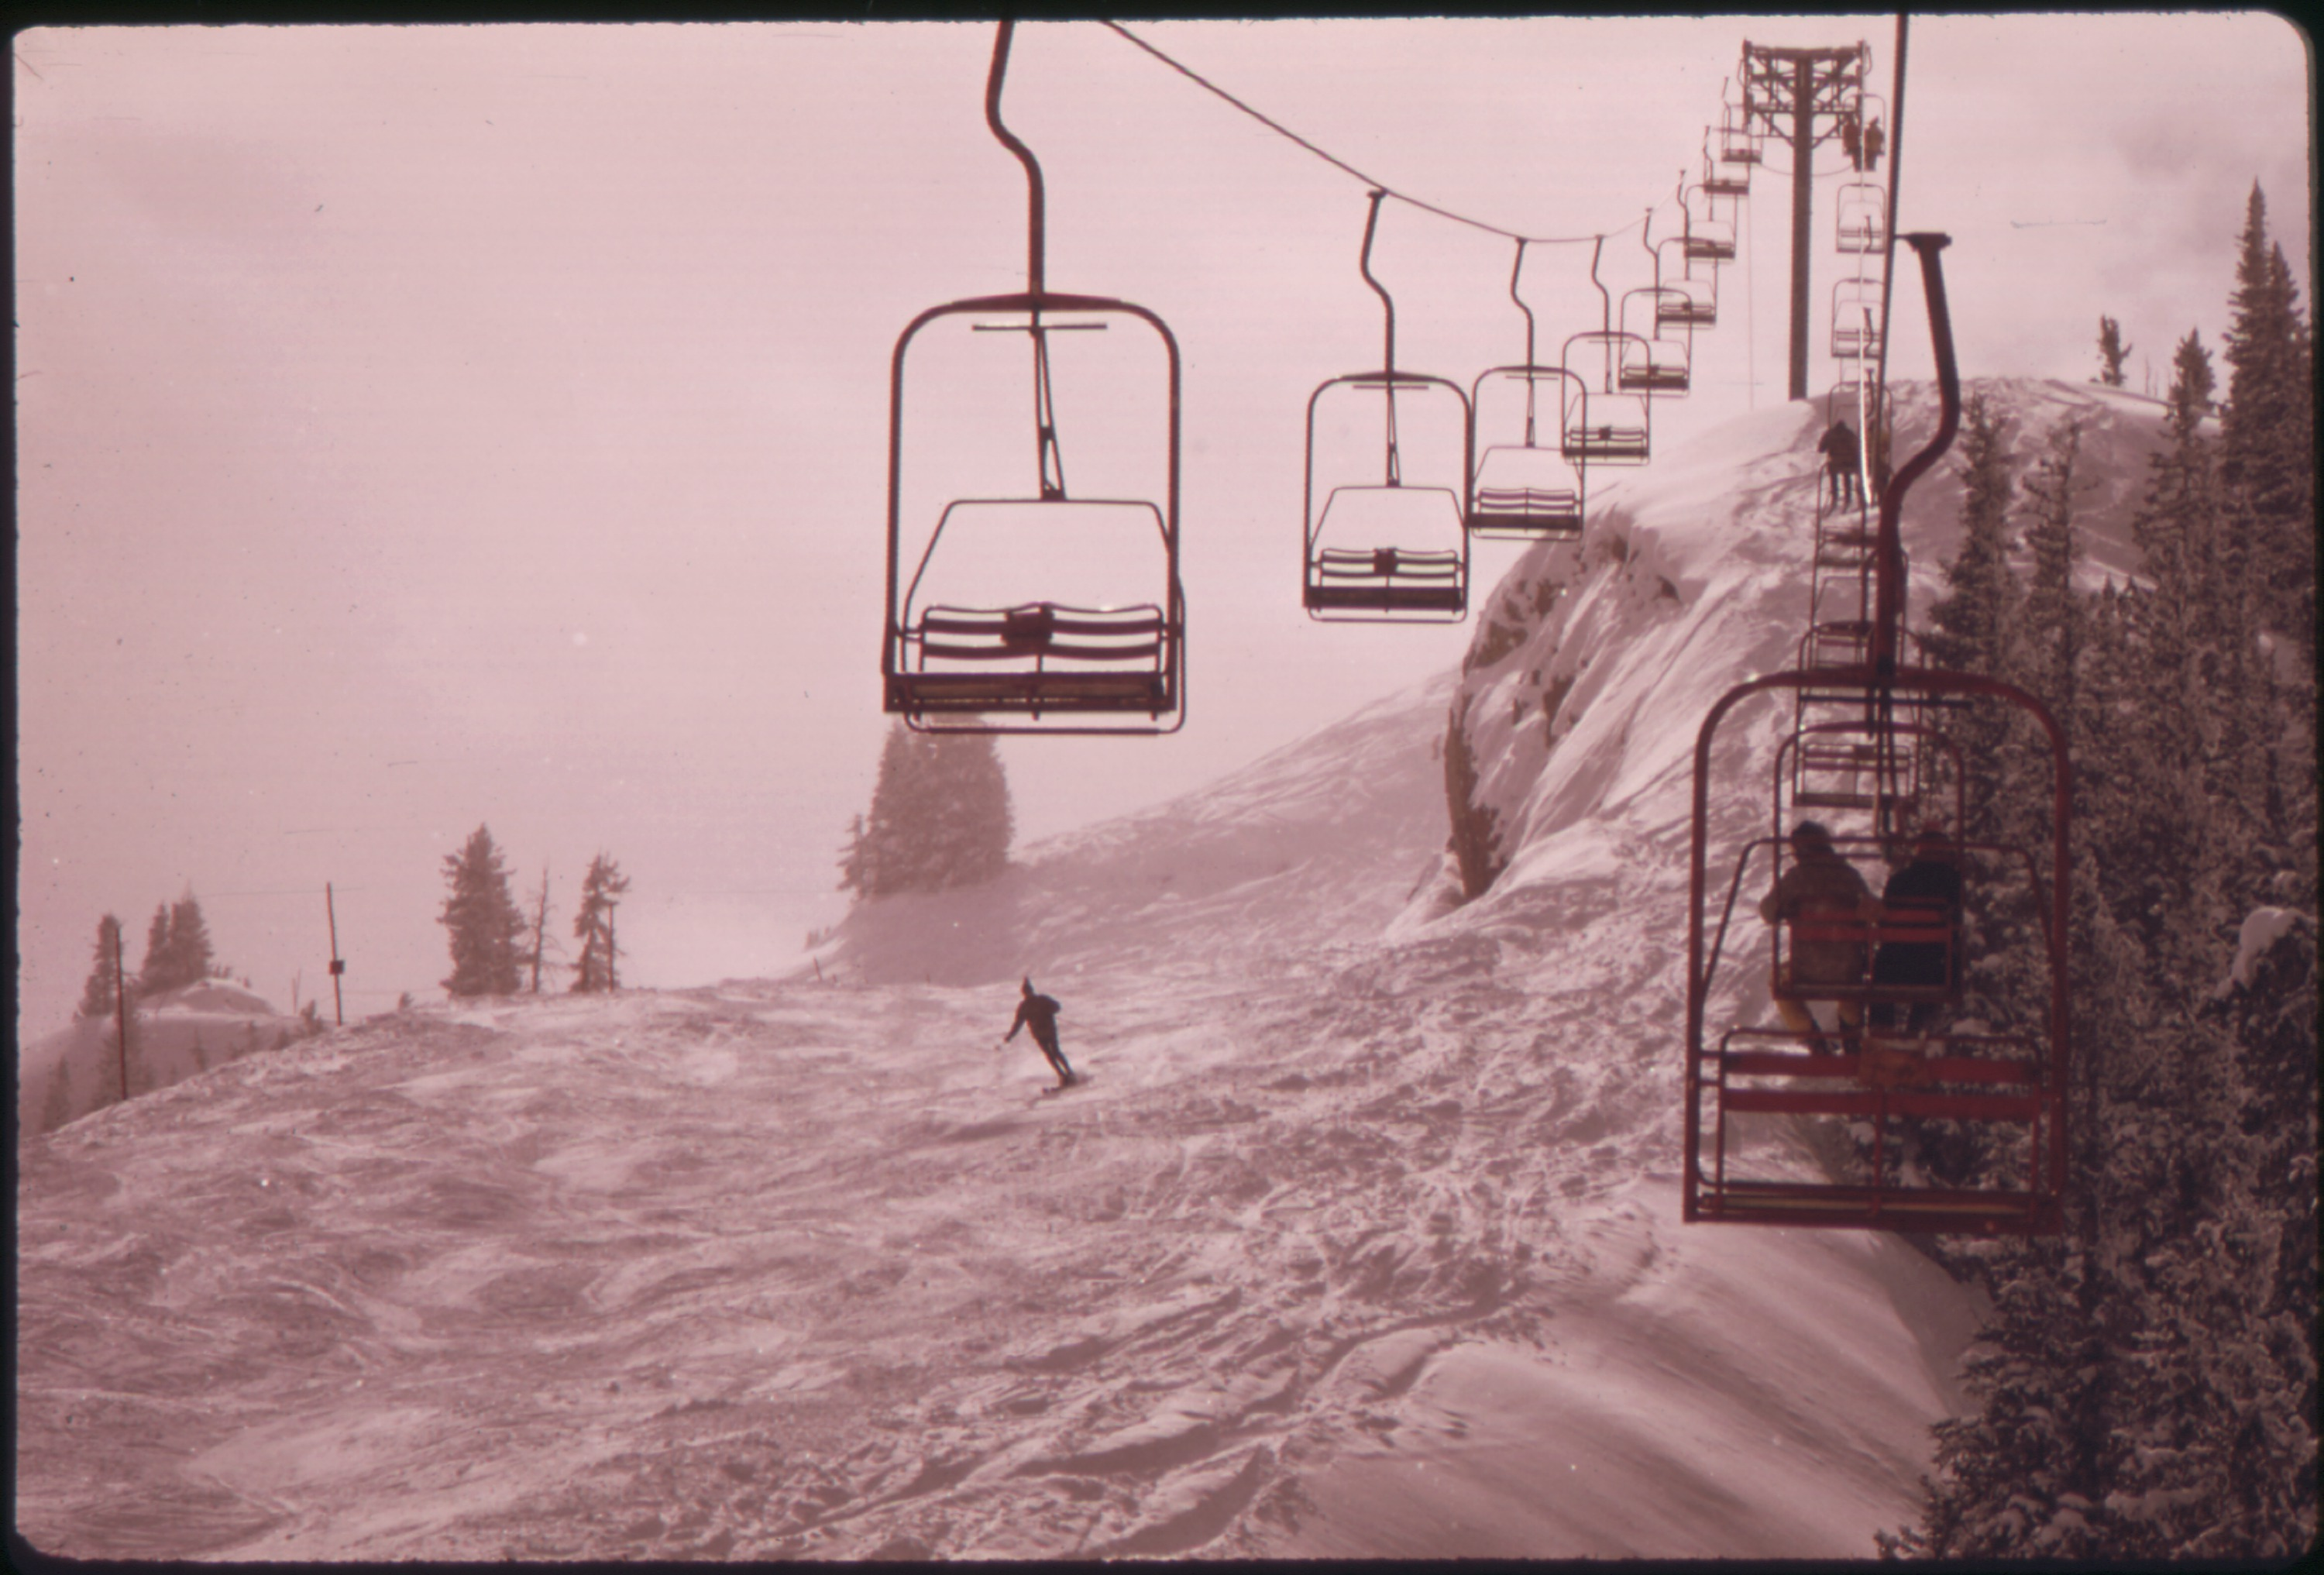 FileALL THE LIFTS AT ASPEN ARE CHAIRLIFTS THIS ONE IS